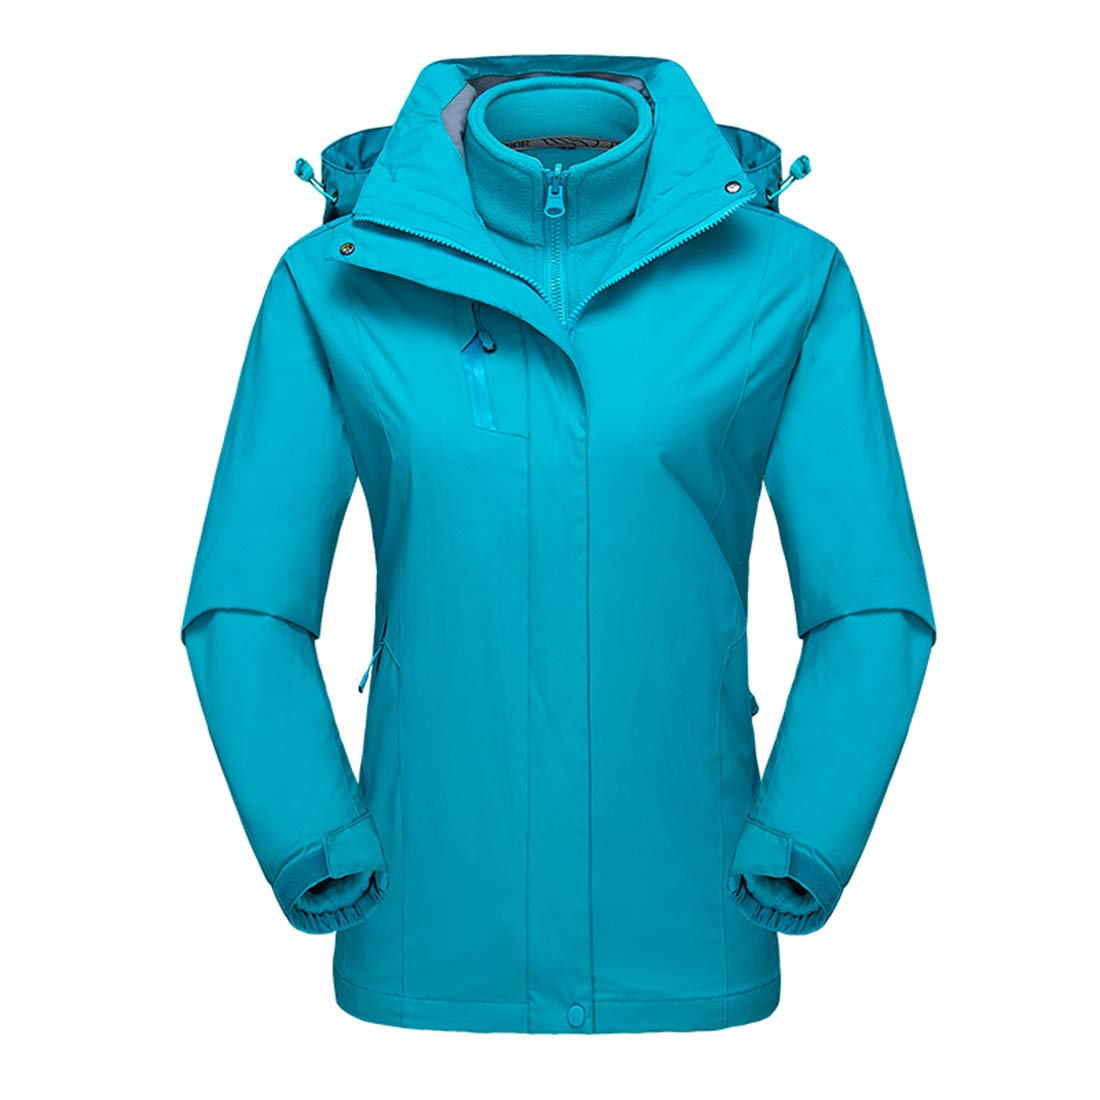 Light bluee US 2XL   Tag 3XL Alomoc Women's 3 in 1 Winter Hiking Jacket Waterproof Softshell Snowboard Coats with Hood